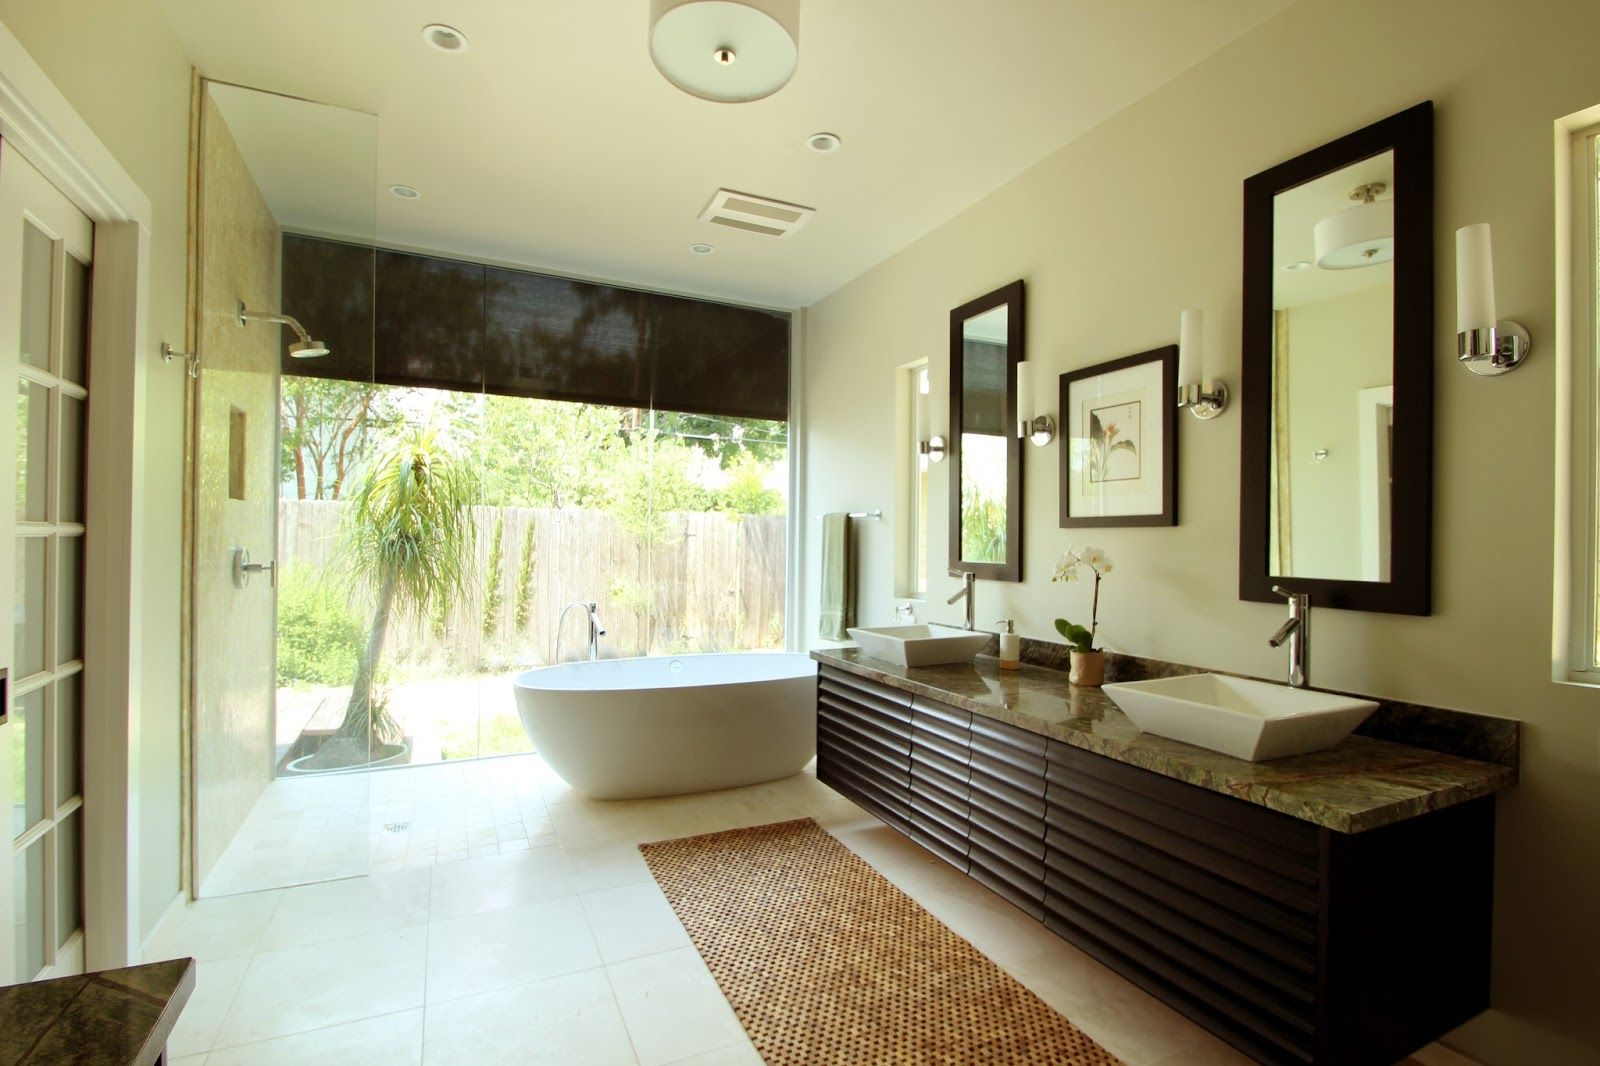 Home ideas for modern master bathroom master baths Master bathroom designs